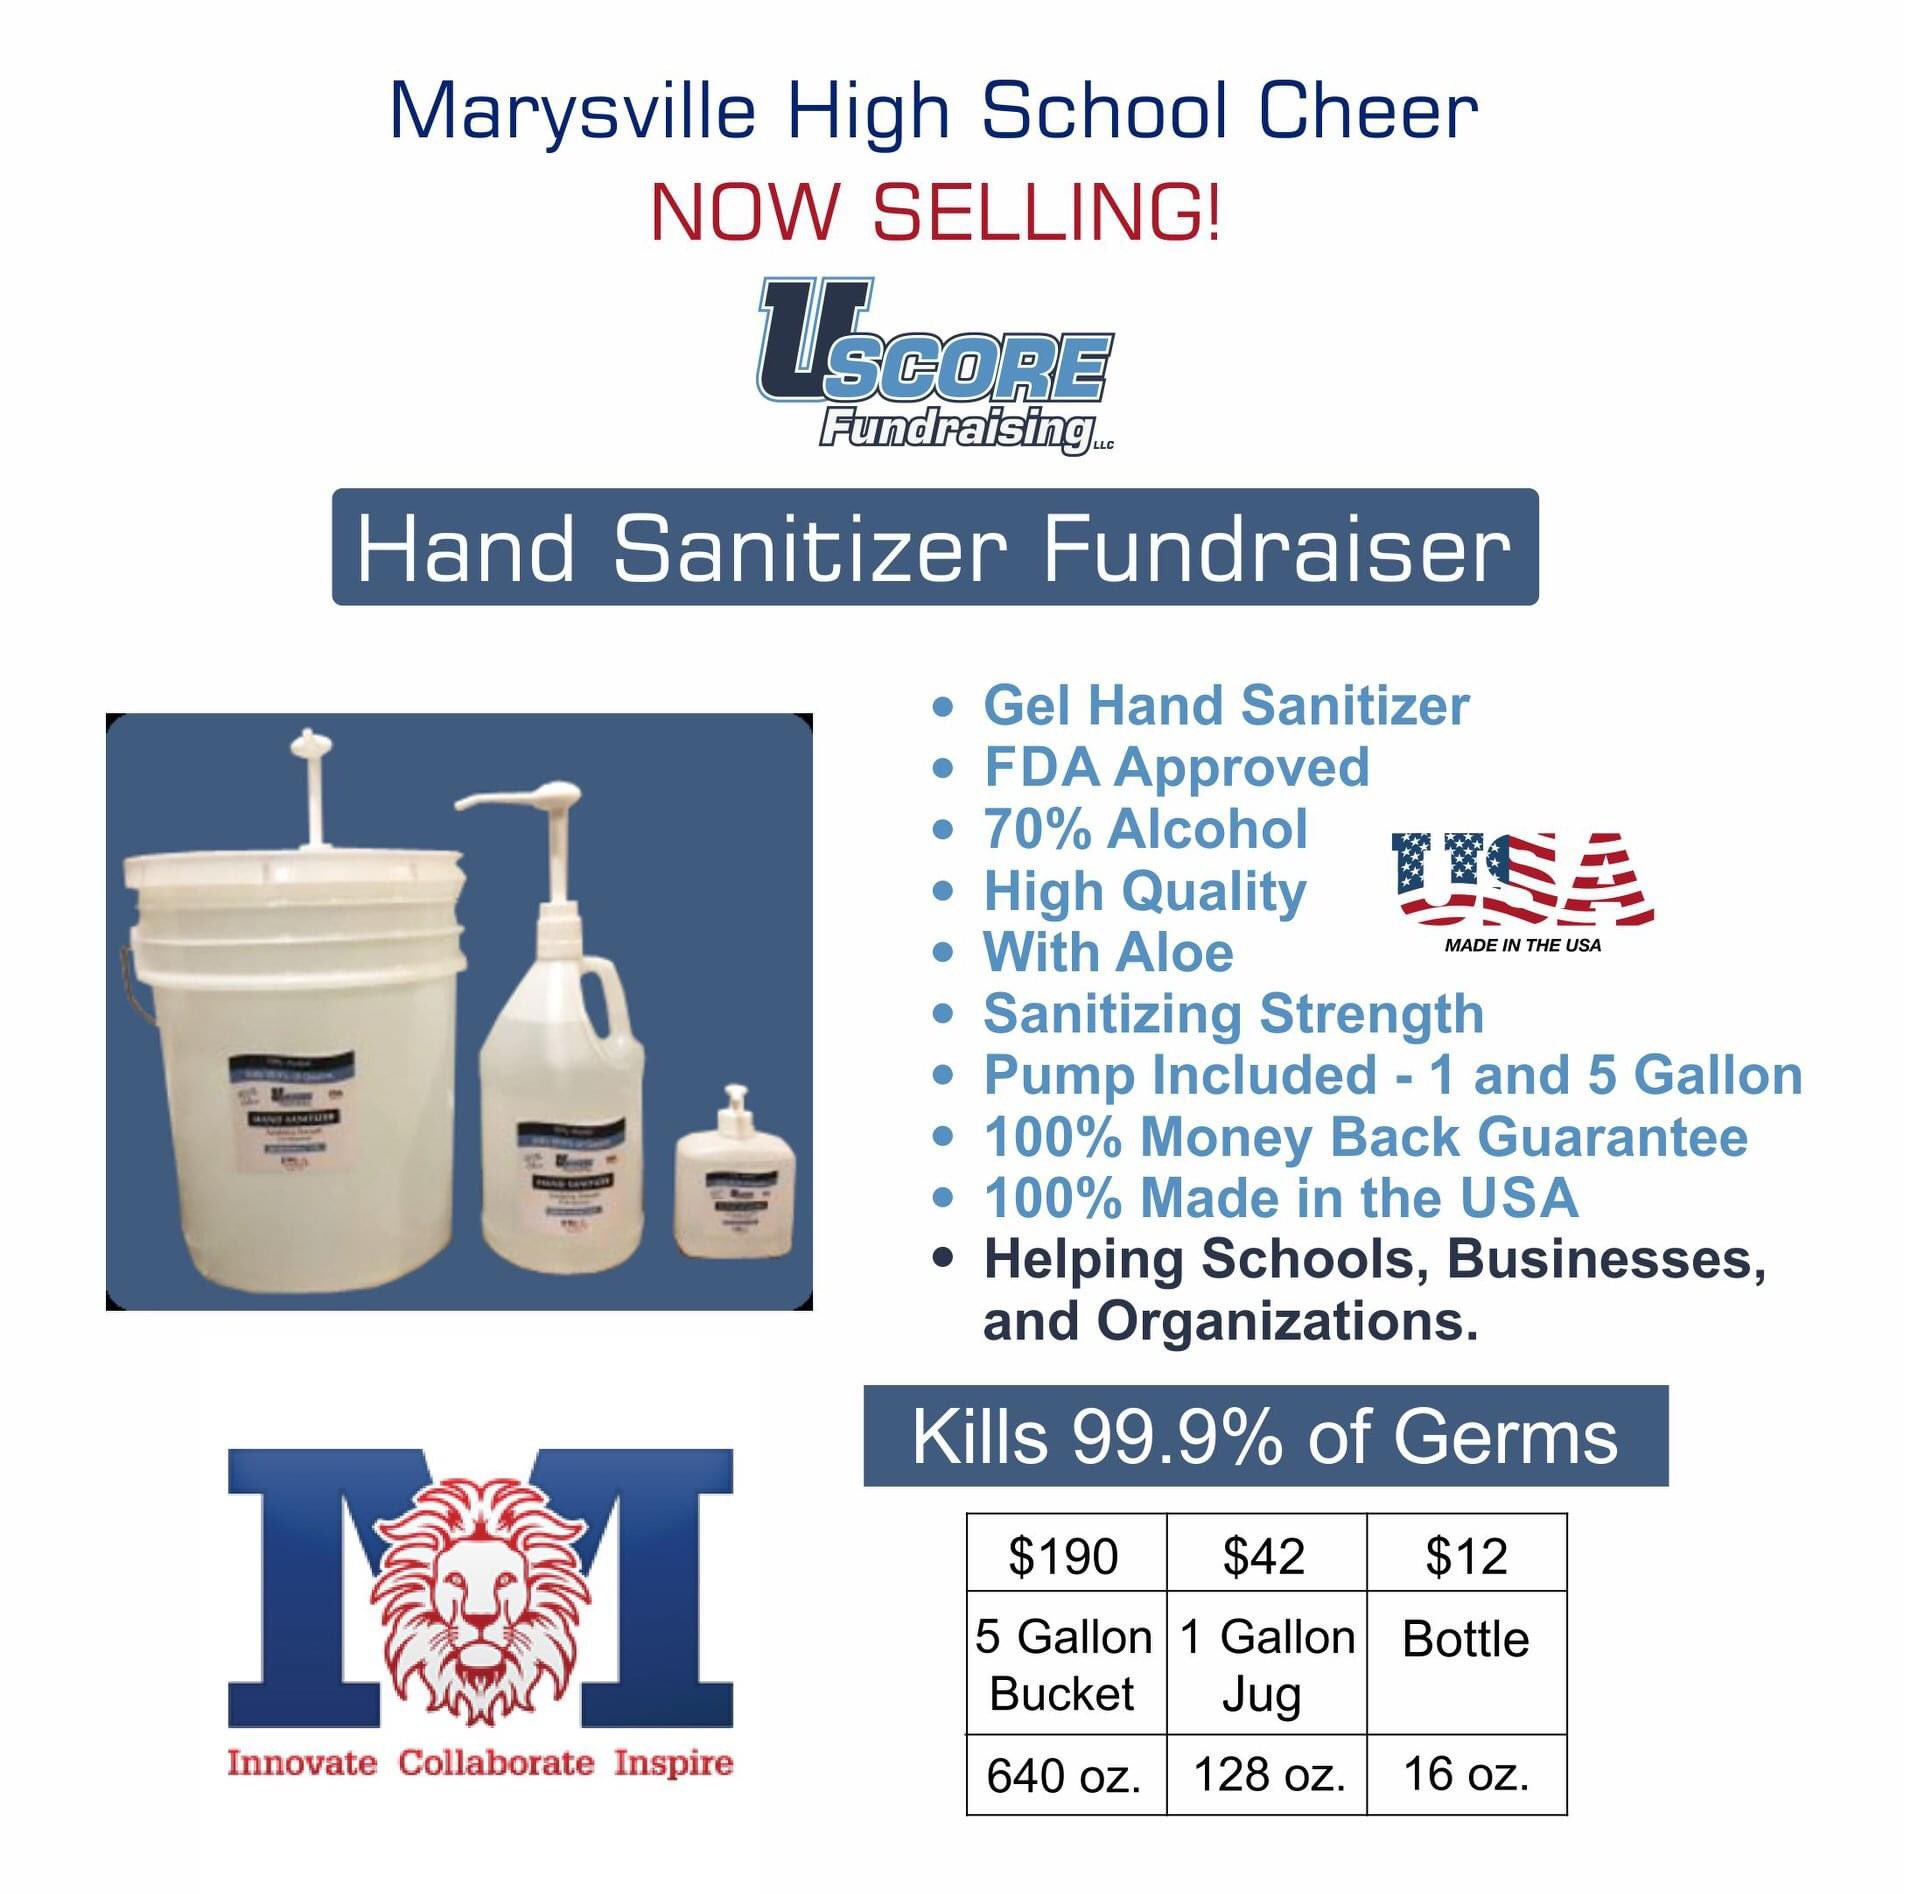 Marysville Cheerleading On Twitter Check It Out We Are Now Selling Hand Sanitizer As A Fundraiser Only Available Through Next Monday June 29 And Will Be Available For Pick Up Thursday July